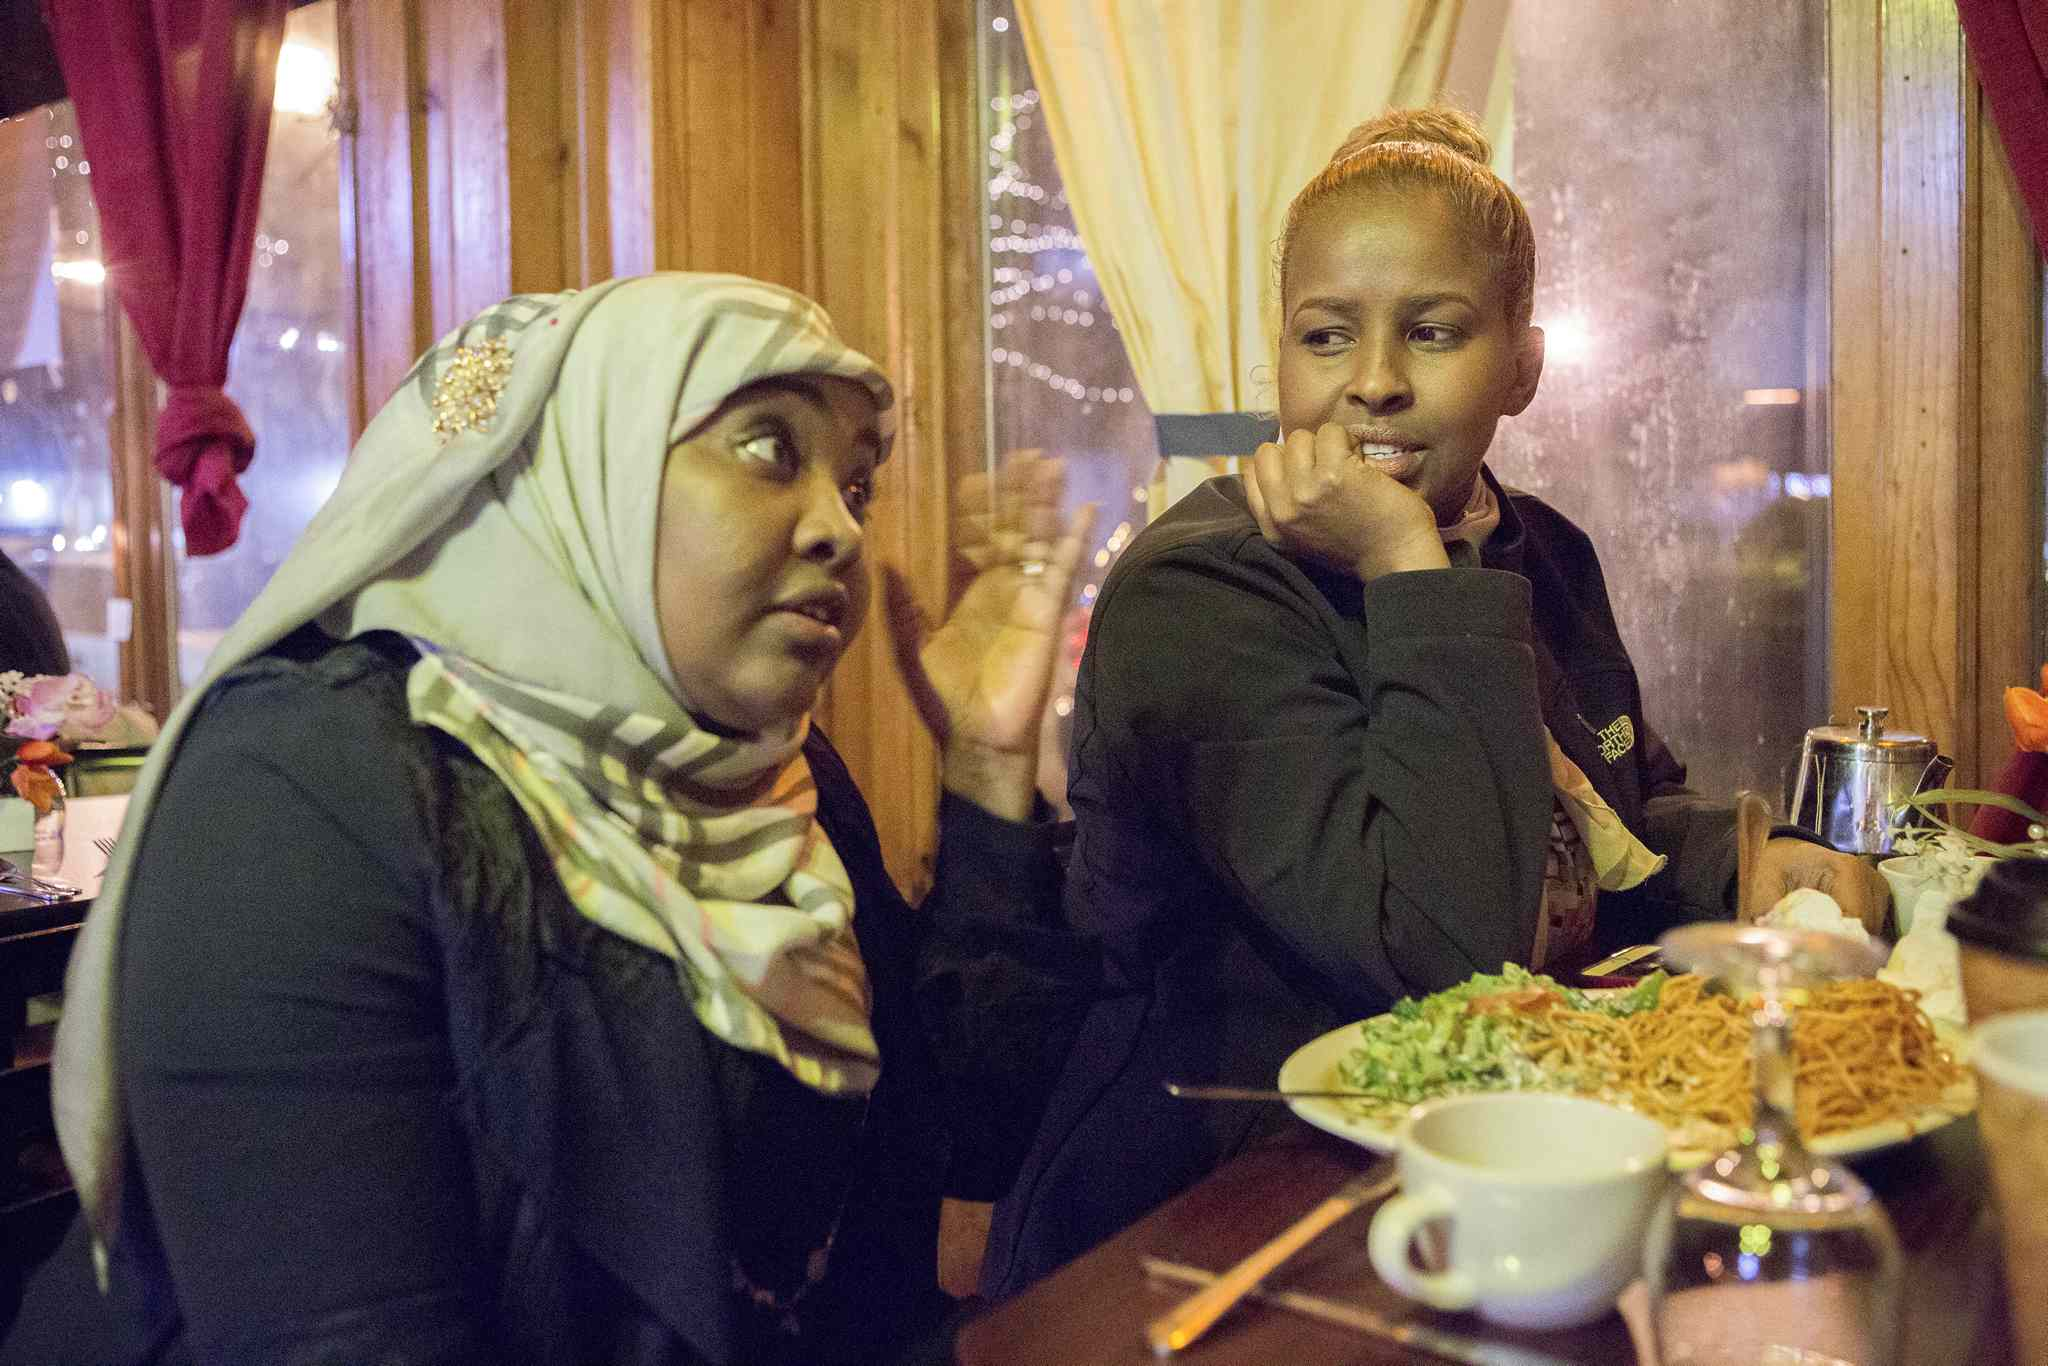 Saciido Shaie (left) and Farhio Kalif said a friend vanished two weeks ago but then called from Winnipeg.